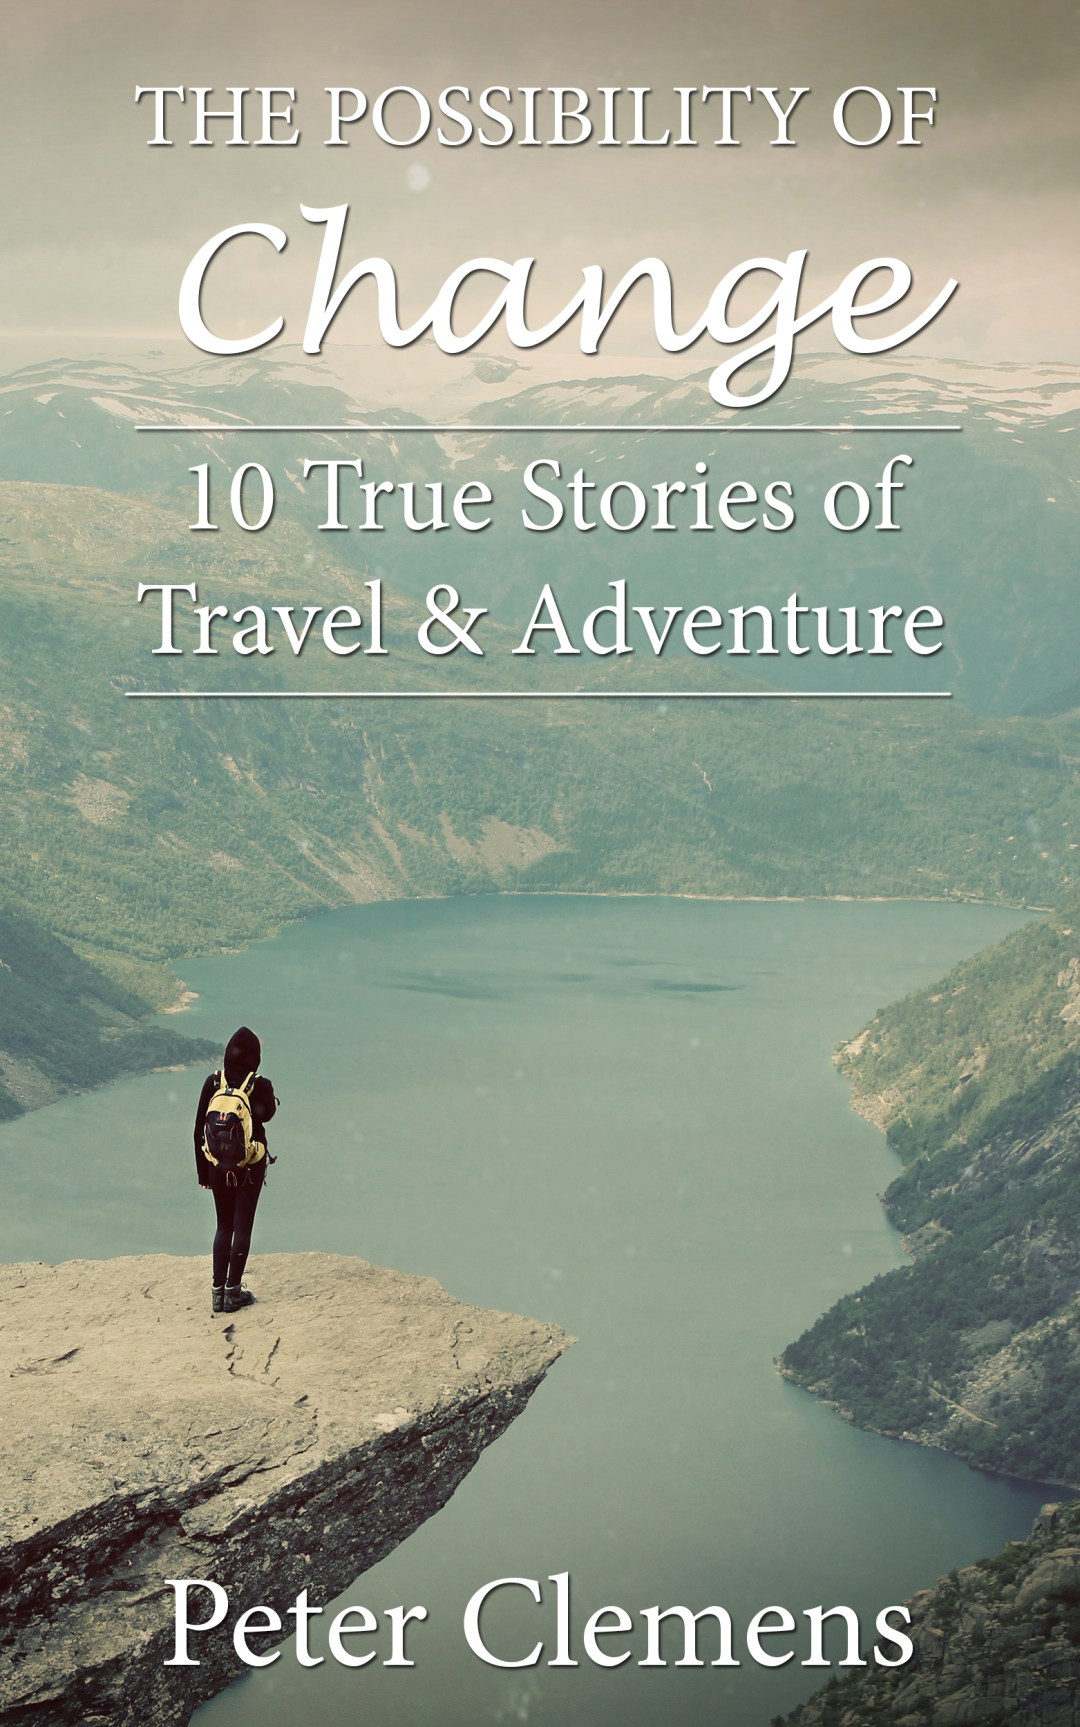 10 True Stories of Travel & Adventure